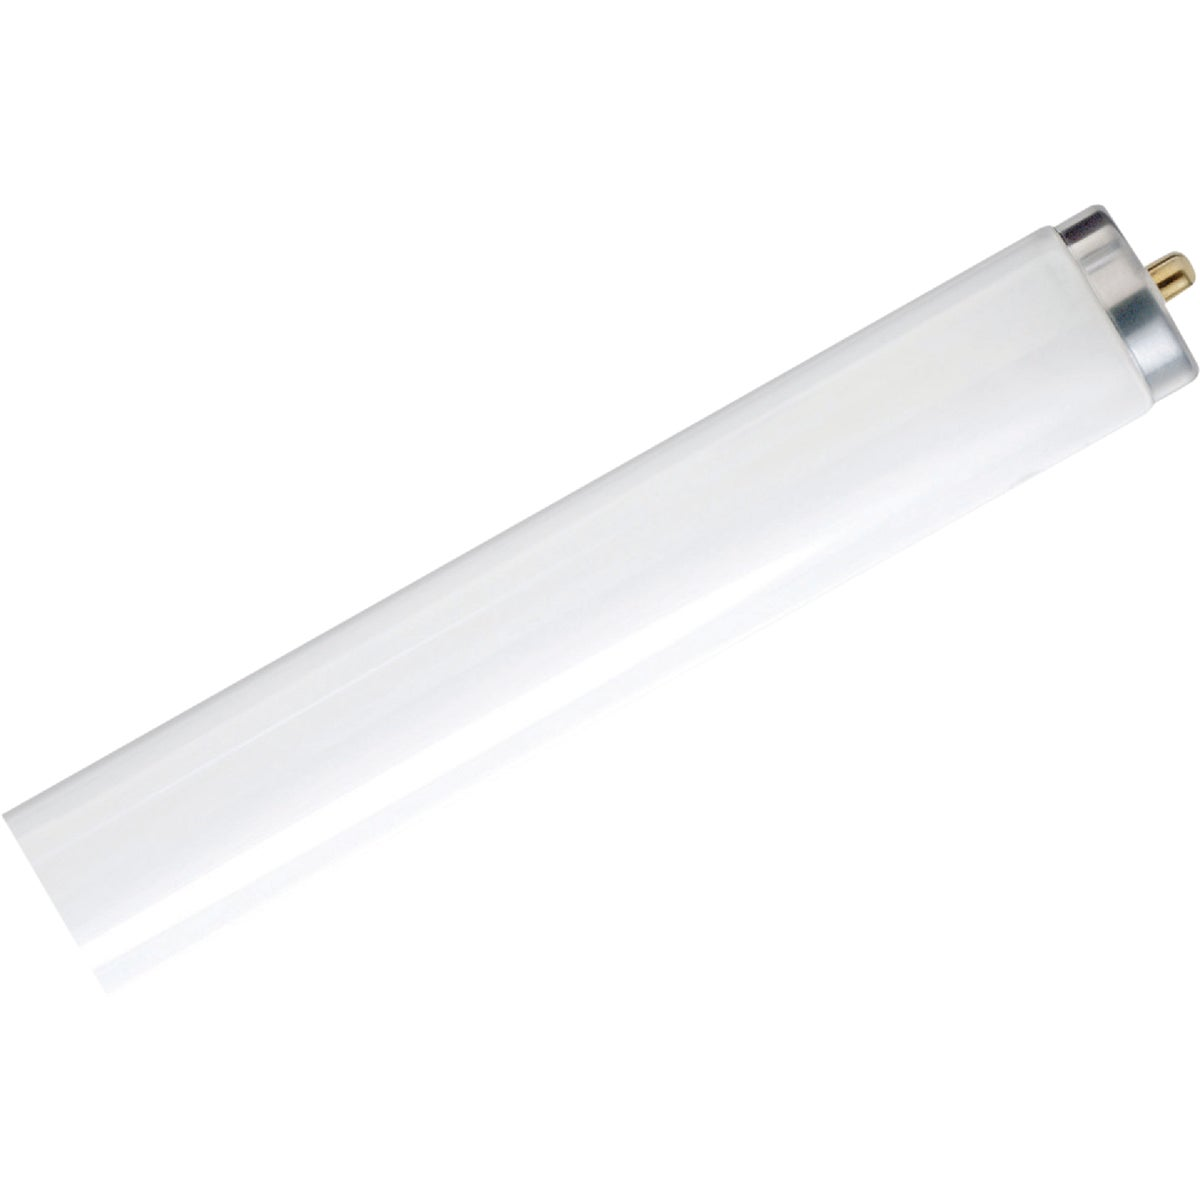 59W 8' T8 50K FLUOR TUBE - 69847 by G E Lighting